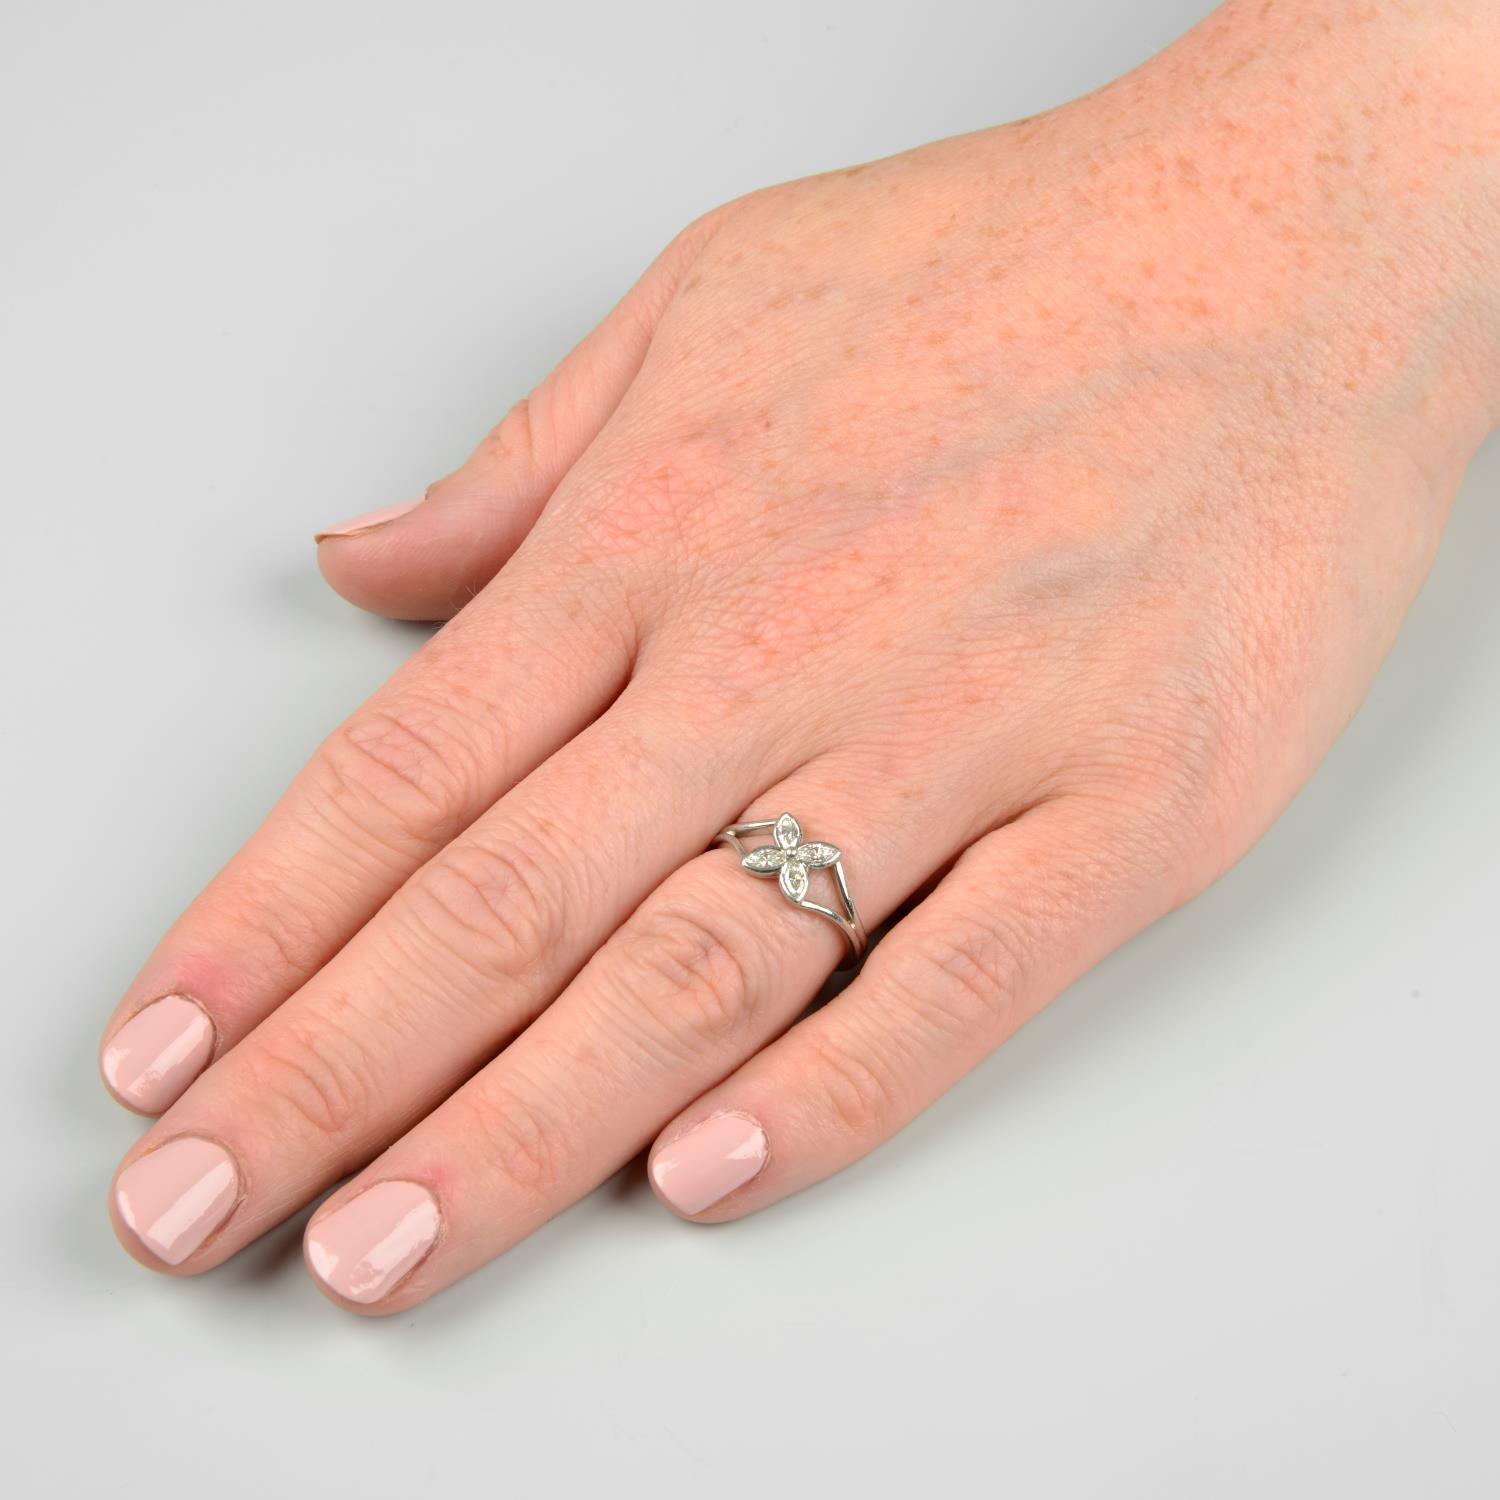 A diamond floral 'Victoria' ring, - Image 3 of 6